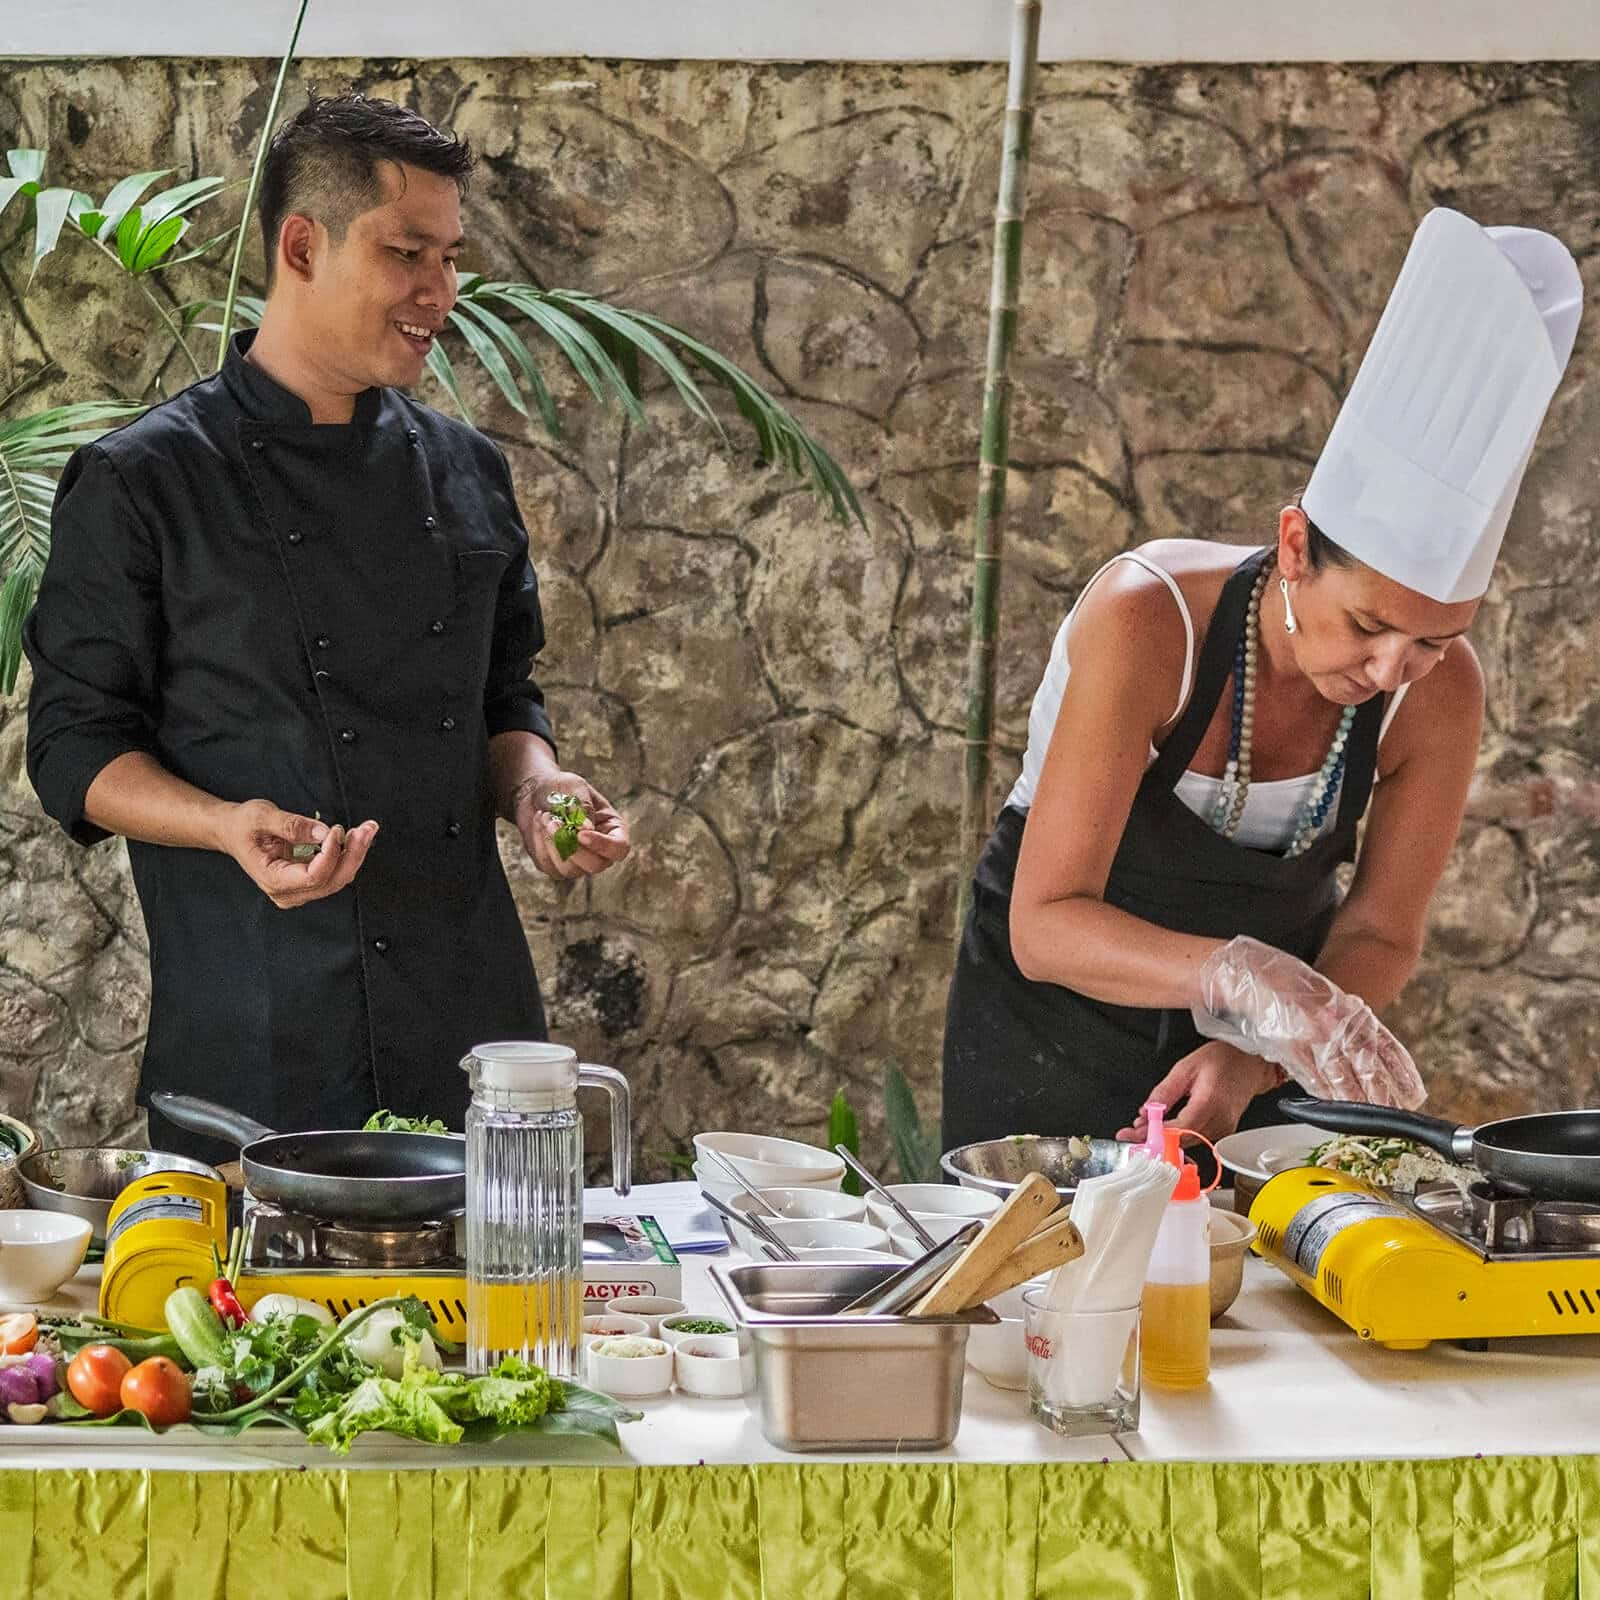 Lum Orng Restaurant, known for its farm to table cuisine in Siem Reap, Cambodia, has a cooking school utilising the freshest ingredients from its own farm.